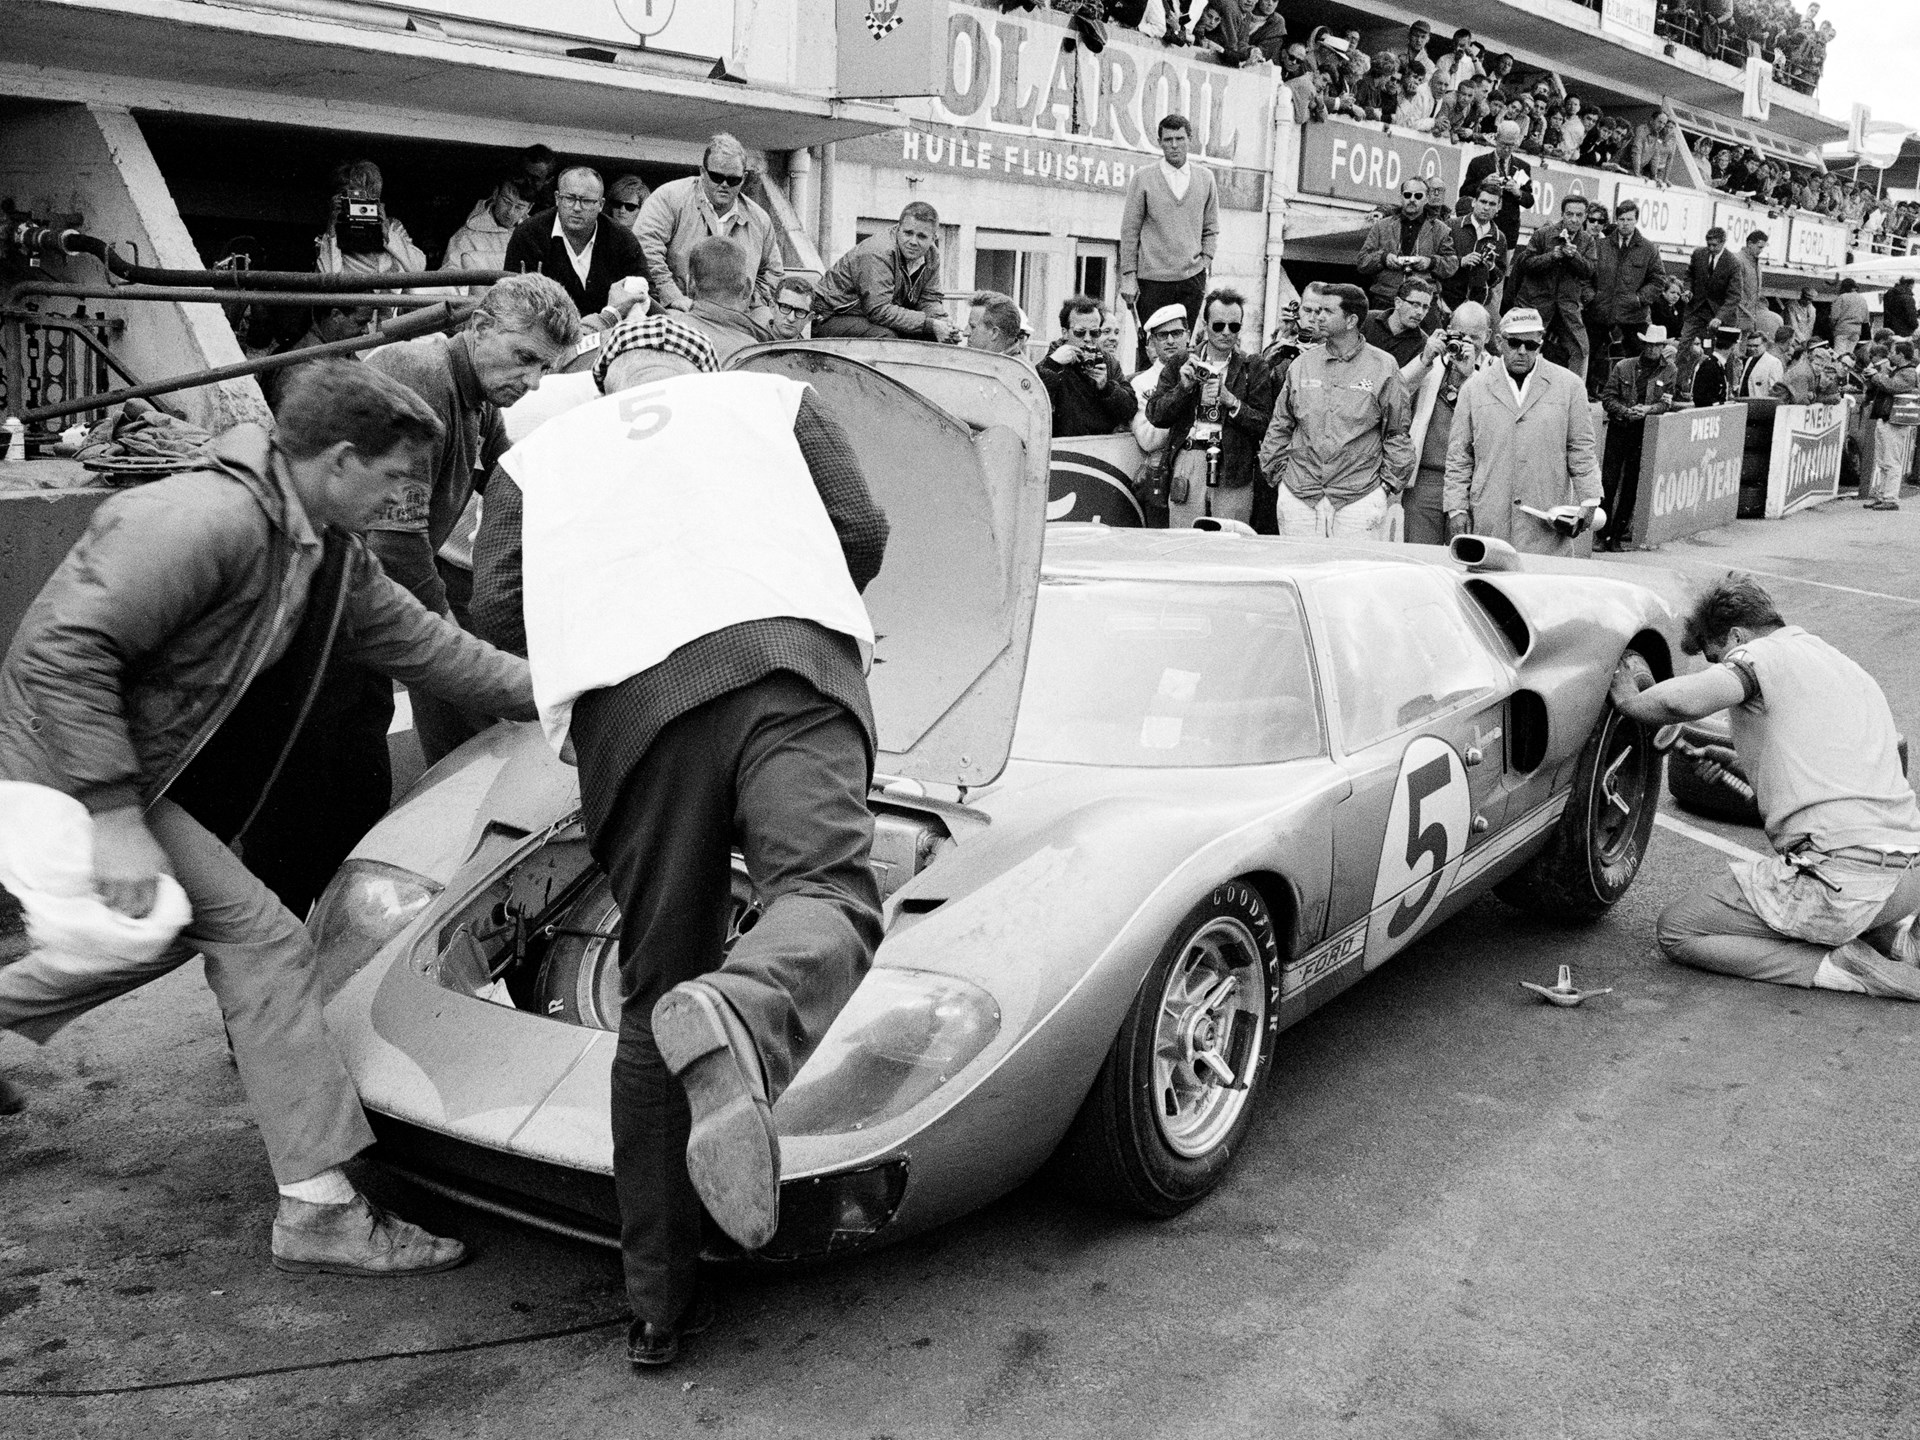 Ronnie Bucknum/Dick Hutcherson, 1966 Le Mans 24 Hours, 3rd Overall.